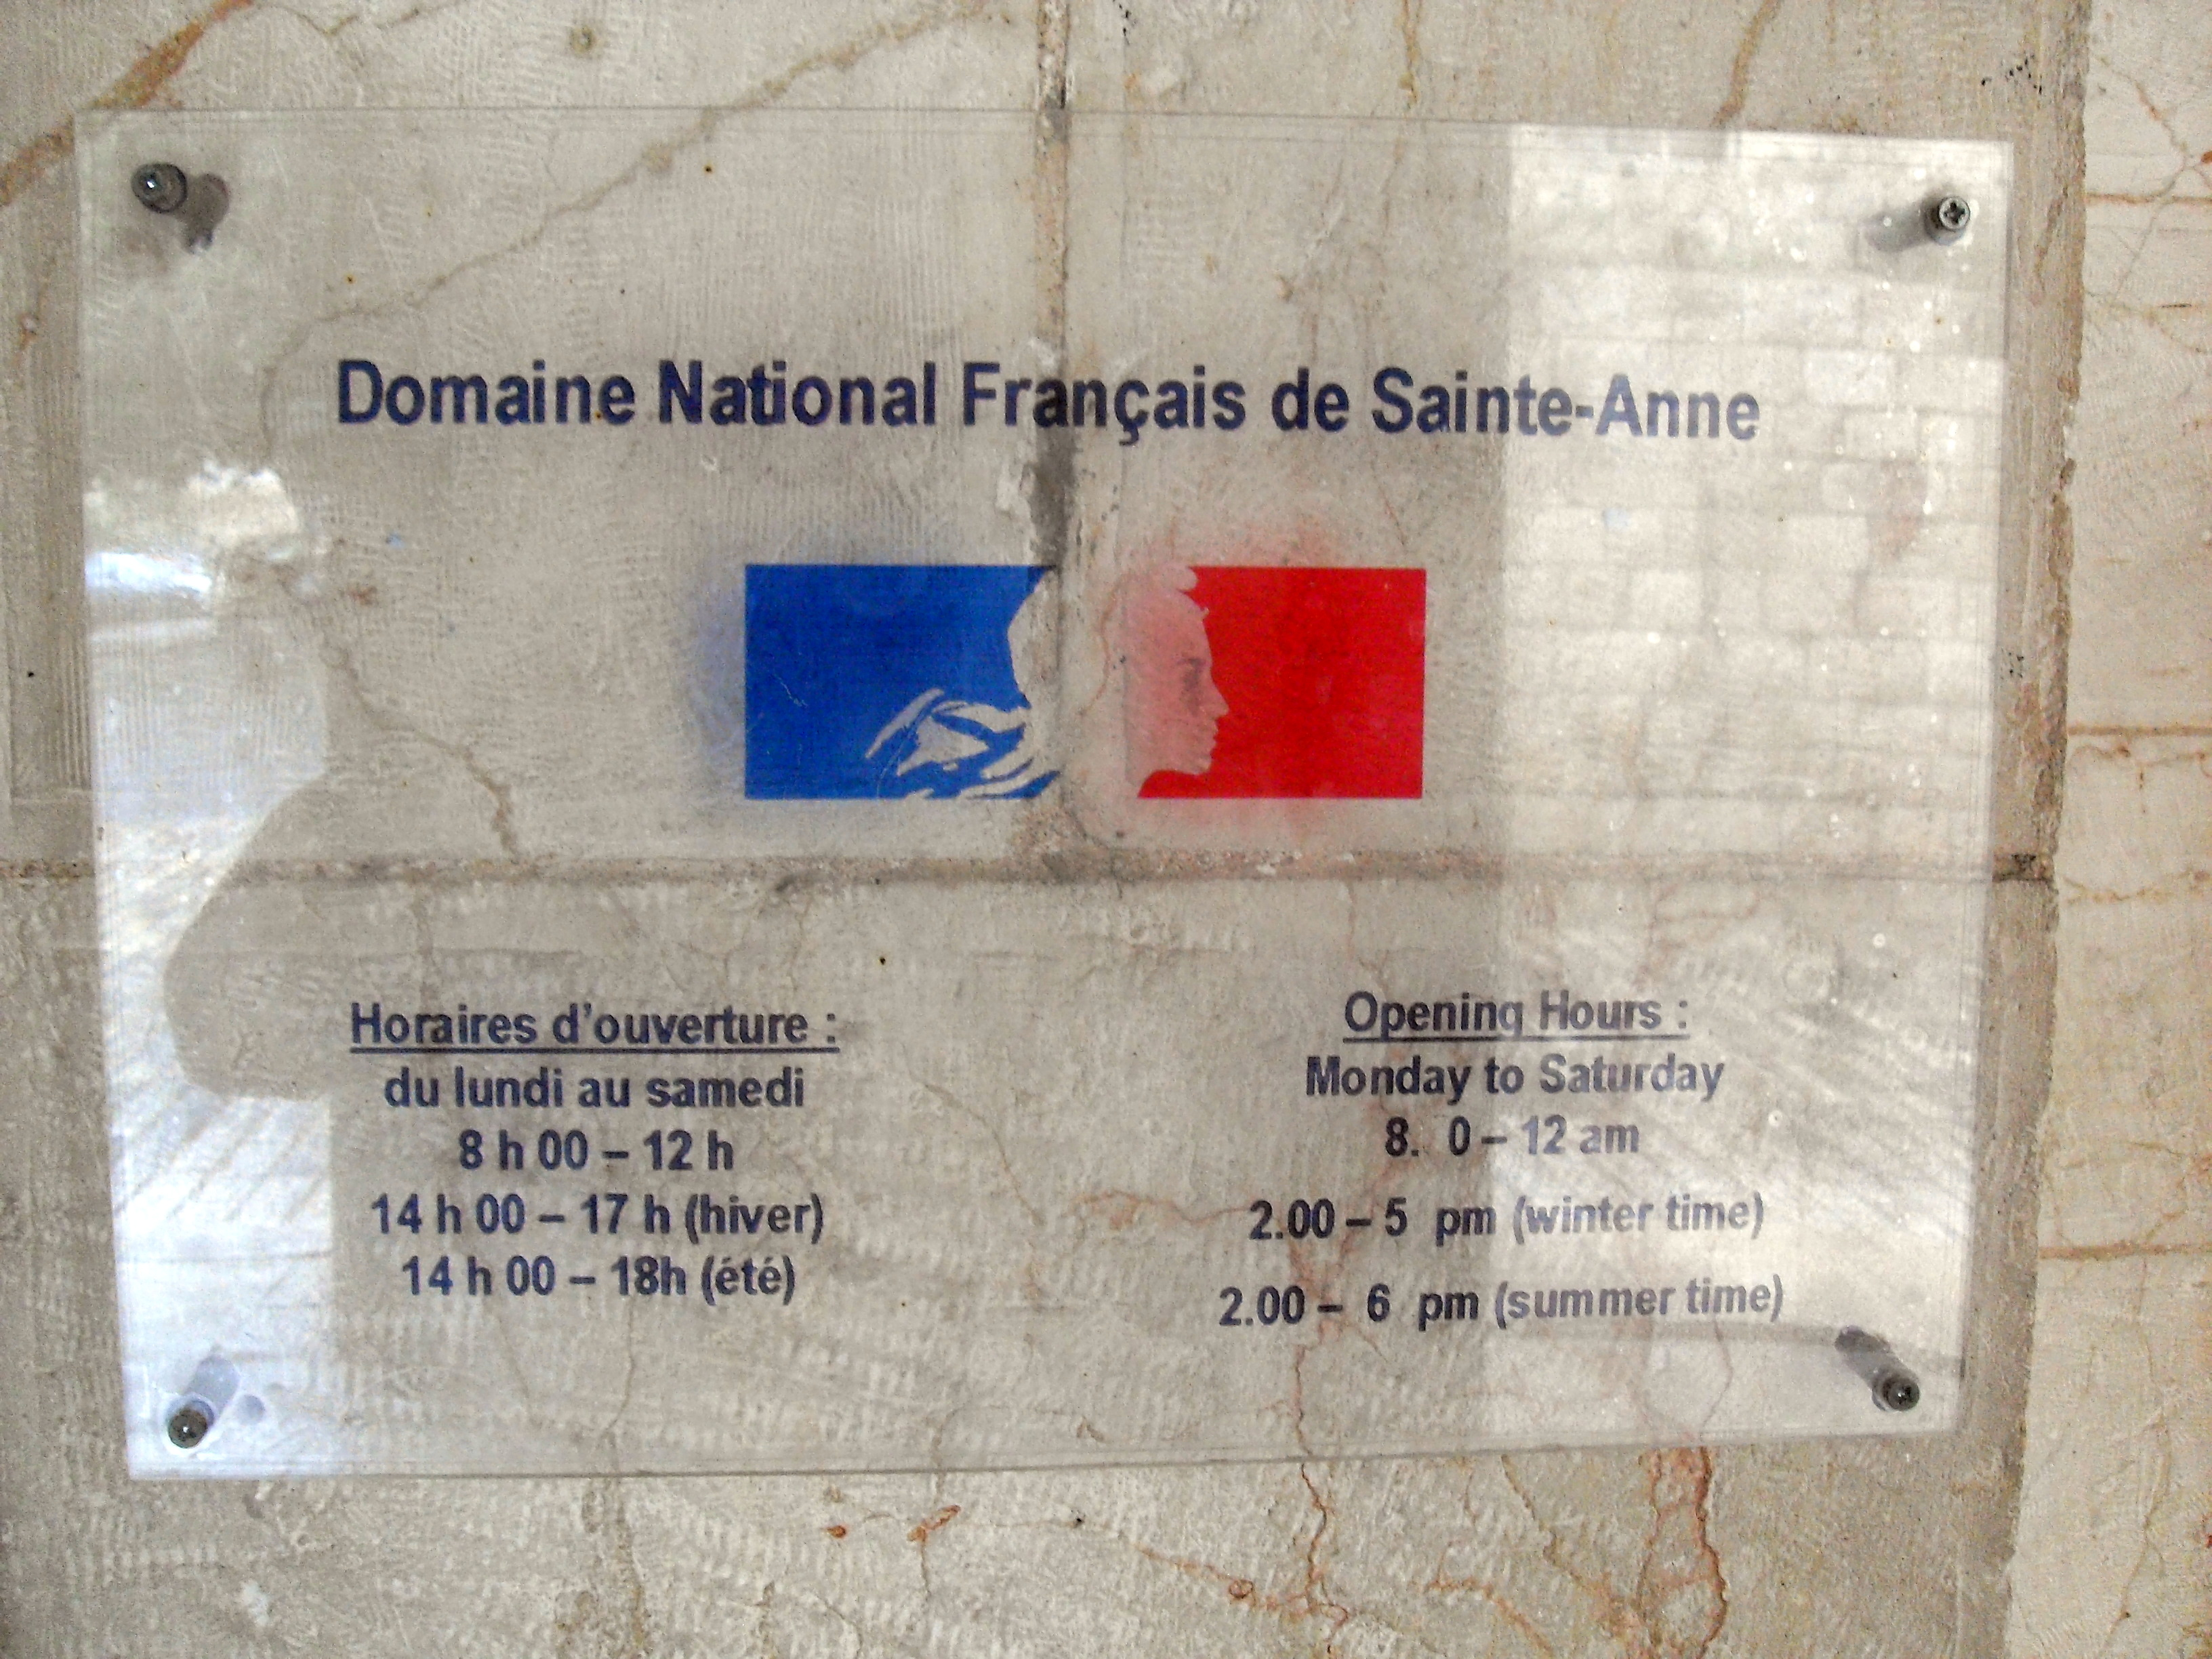 https://i1.wp.com/upload.wikimedia.org/wikipedia/commons/3/3b/Old_Jerusalem_Domaine_National_Fran%C3%A7ais_de_Saint-Anne_sign.jpg